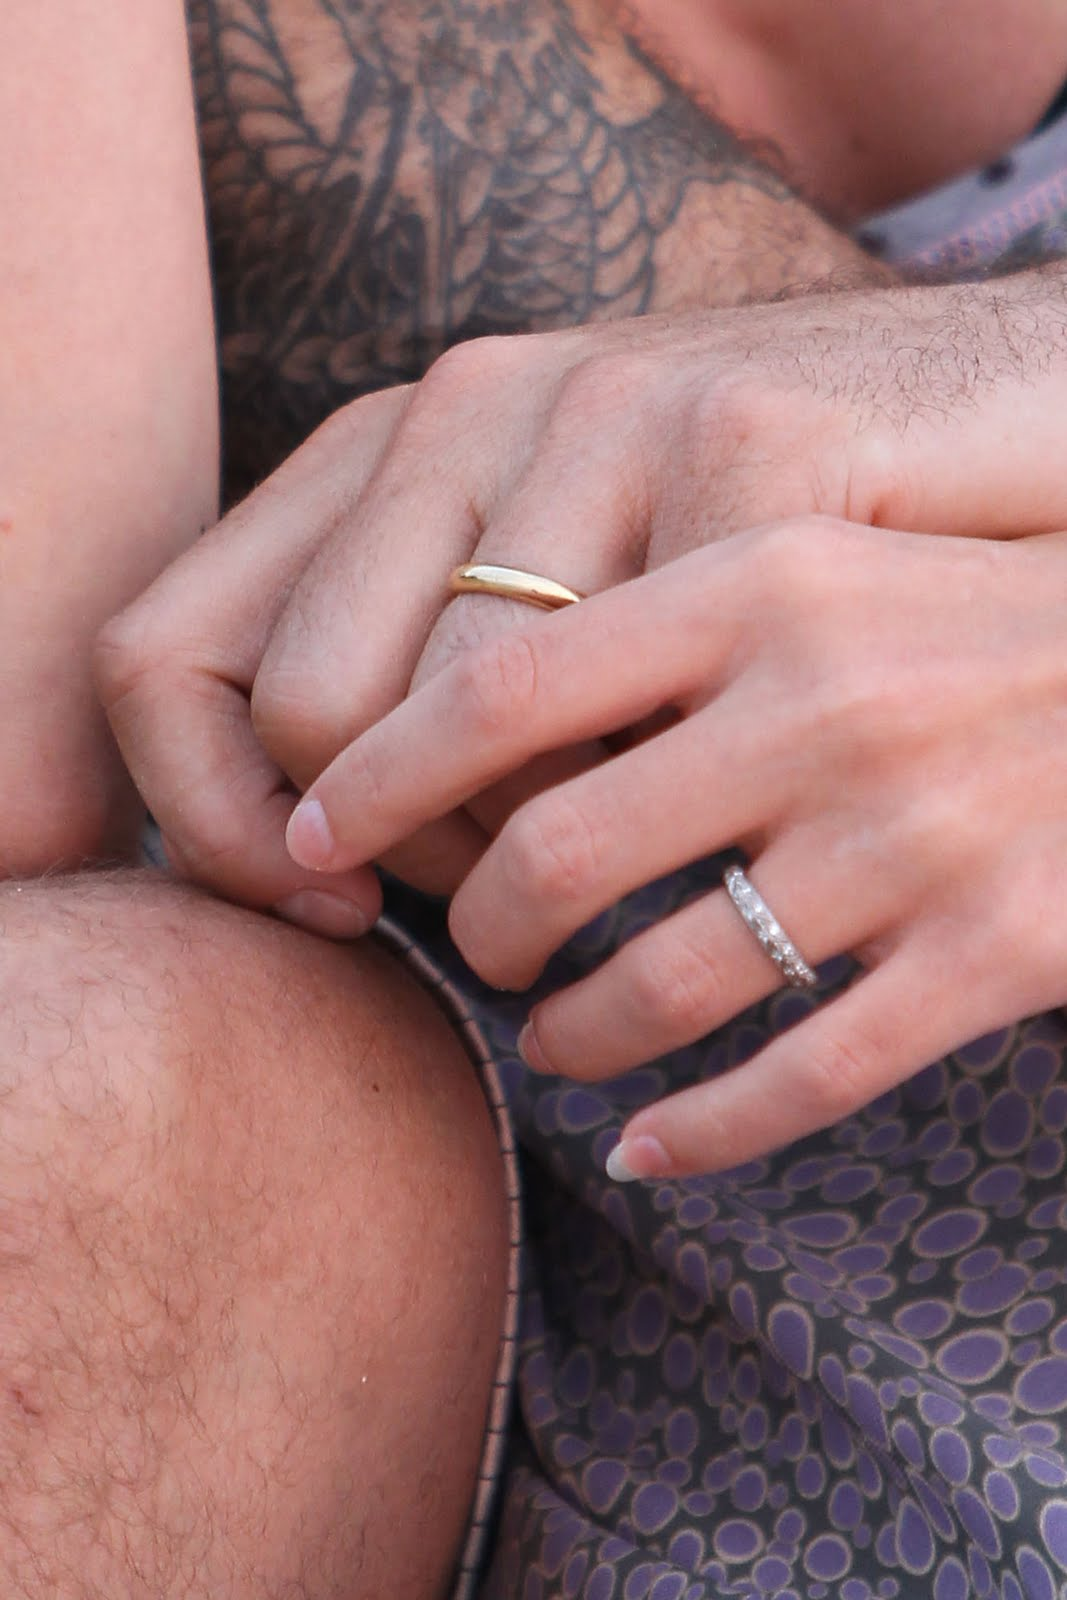 WEIRDLAND: Wedding bands, diamond rings